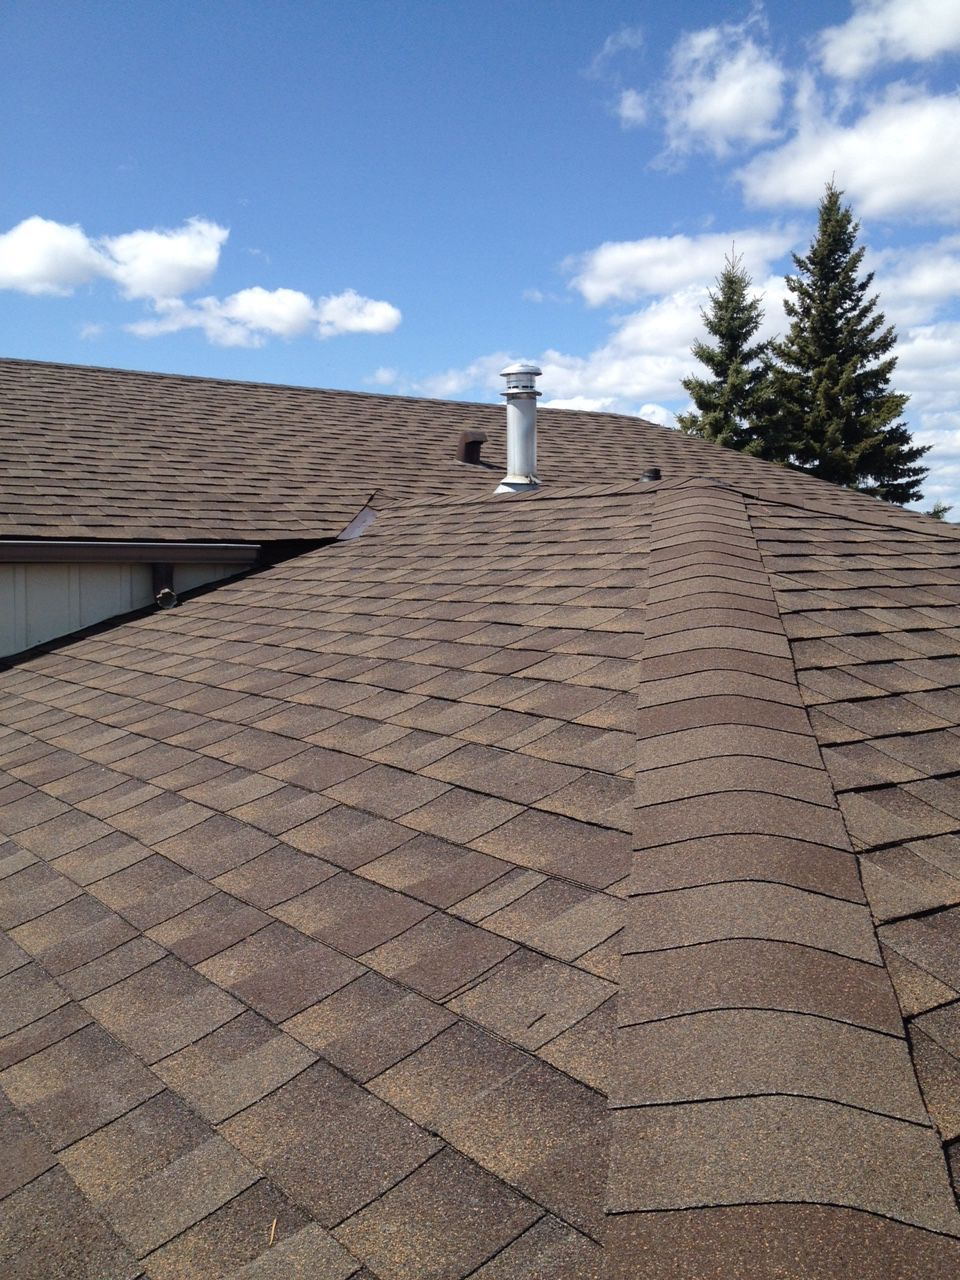 Roof maintenane in the pacific northwest steelroofingideas